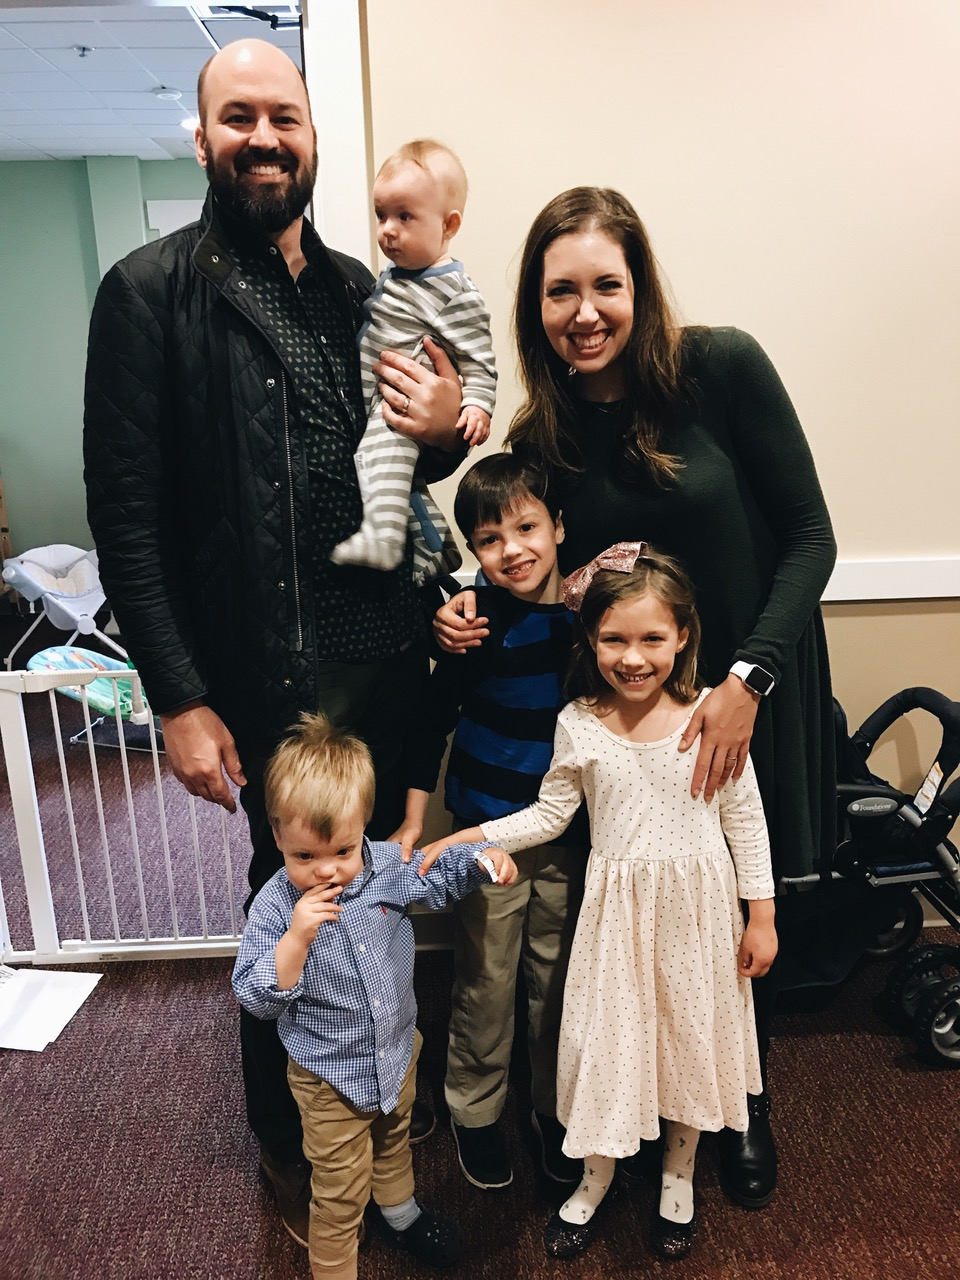 She is a mama of four sweet ones and has such a heart for the Lord and struggles with the same issues of life that we all have. She collaborates with her musician husband, Matt, and they have the privilege of working through these creative projects together. I knew you would enjoy our conversation and so decided to share this podcast with you.